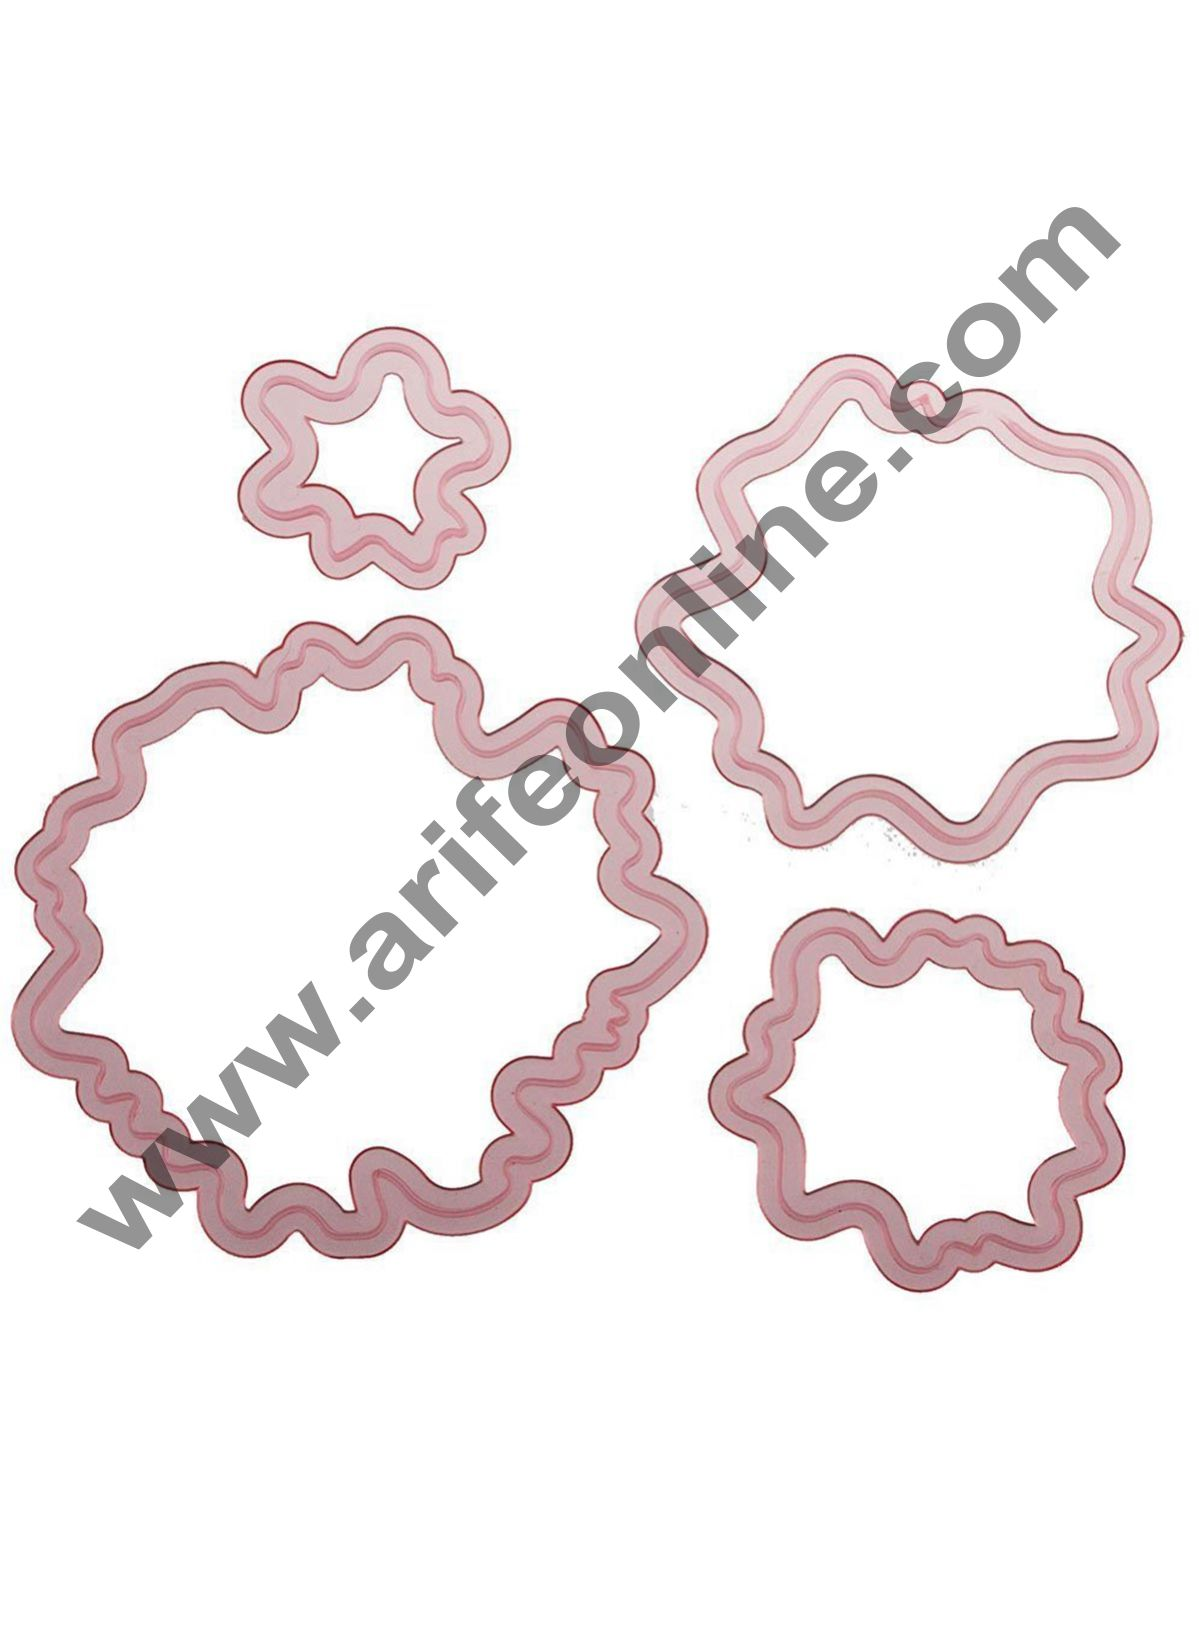 Cake Decor  Whimsical Peony Peonies Flower Cutter Set of 4 cutters for rolled fondant and gum paste